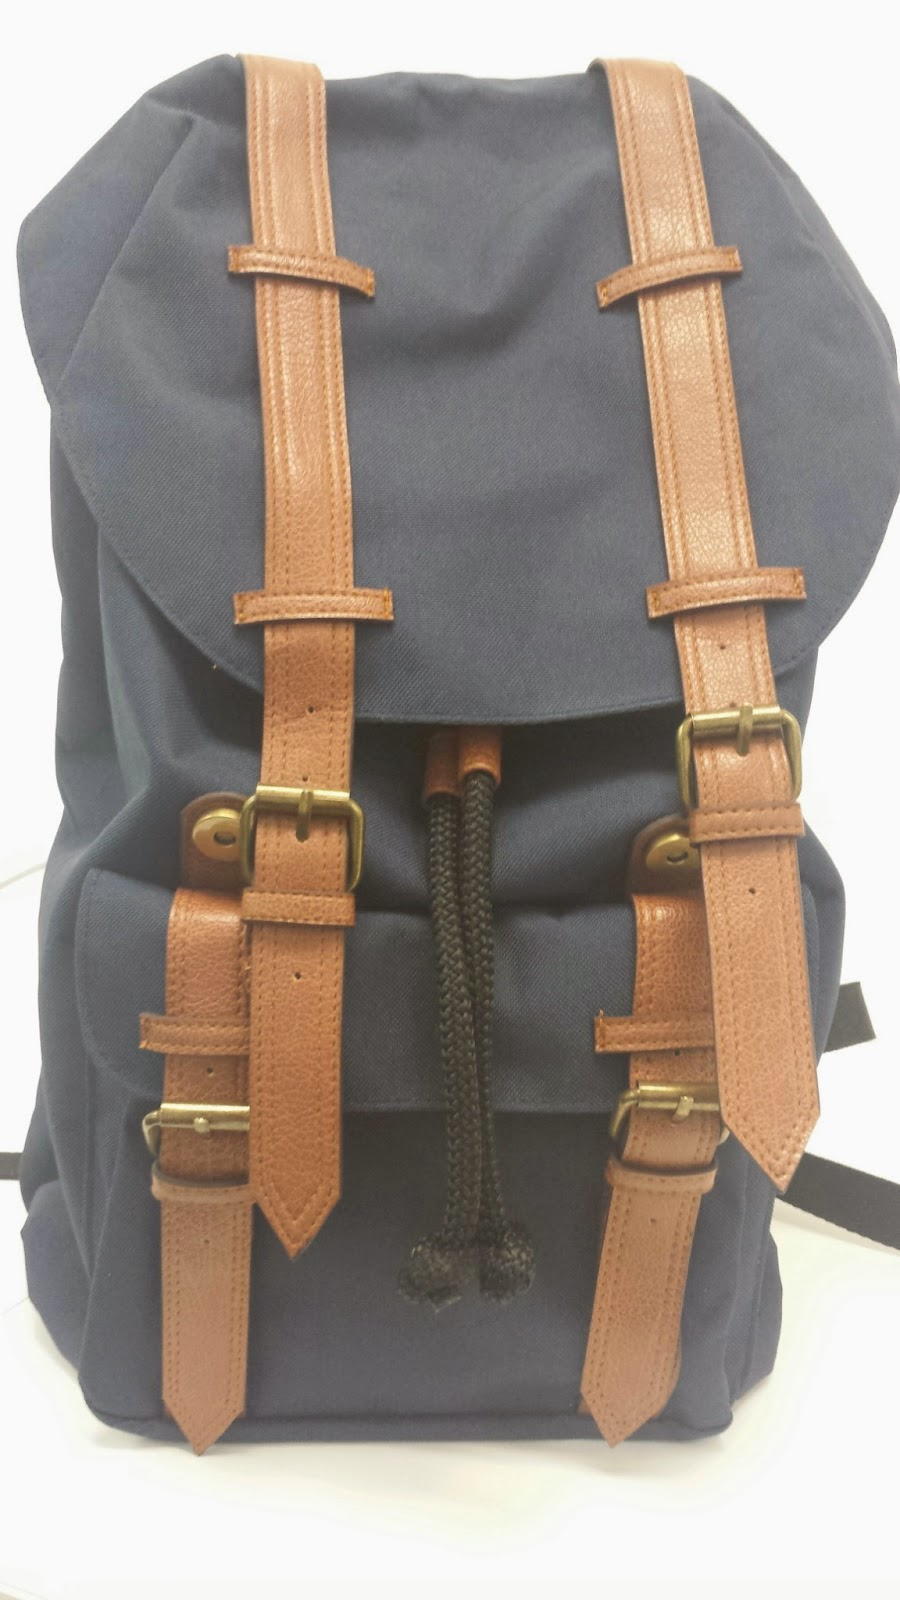 9690991c70e It looks similar to a Herschel bag but is waaay cheaper! It only costs  499.75! It s from SM Accessories. I got a green one for my sister and this  blue one ...